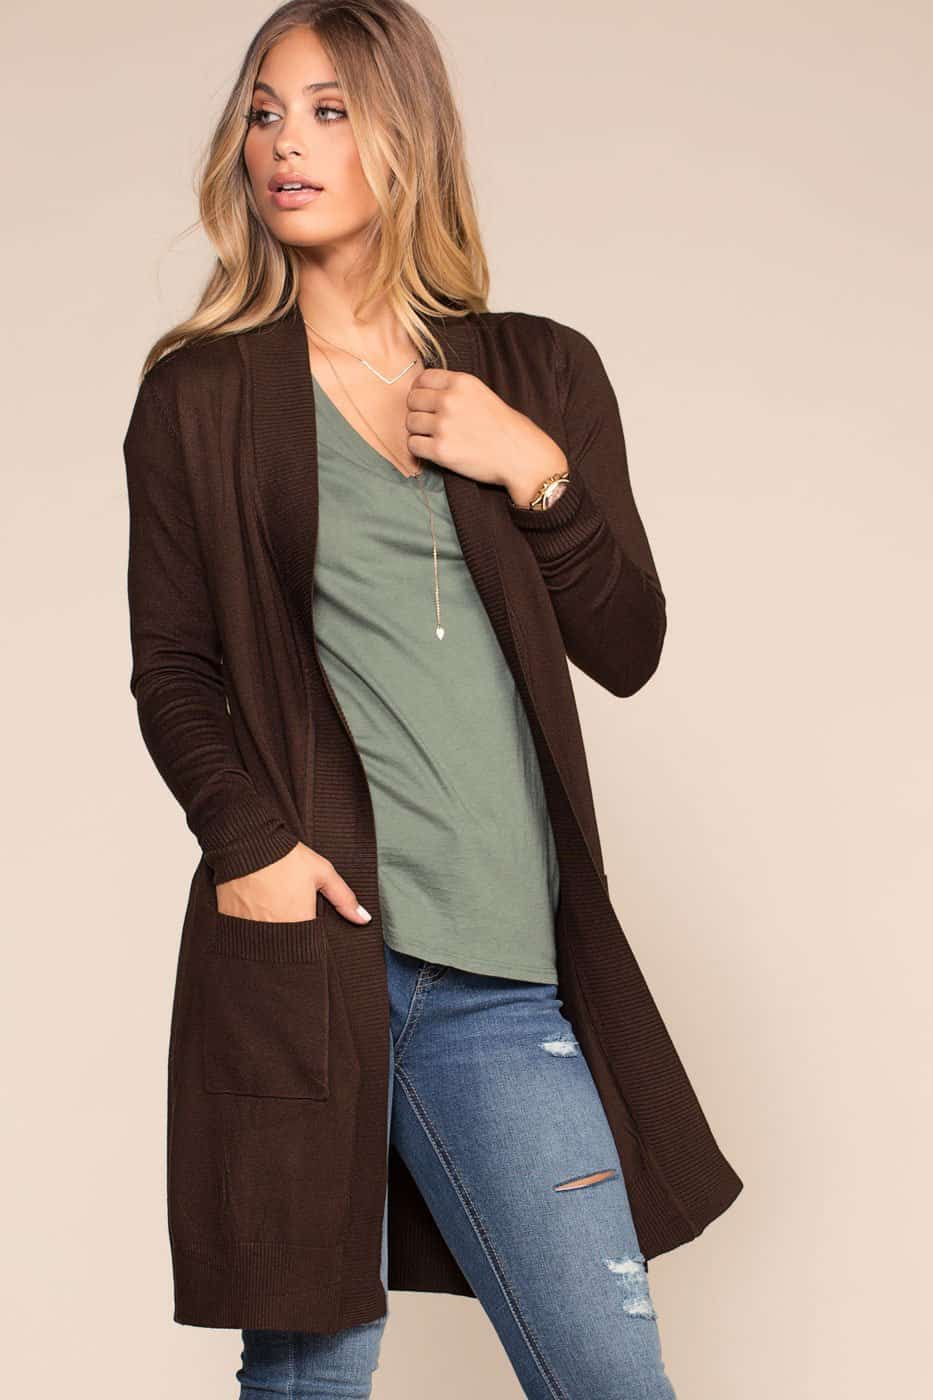 Fall Fashion: Spend Less & Look Great Year after Year